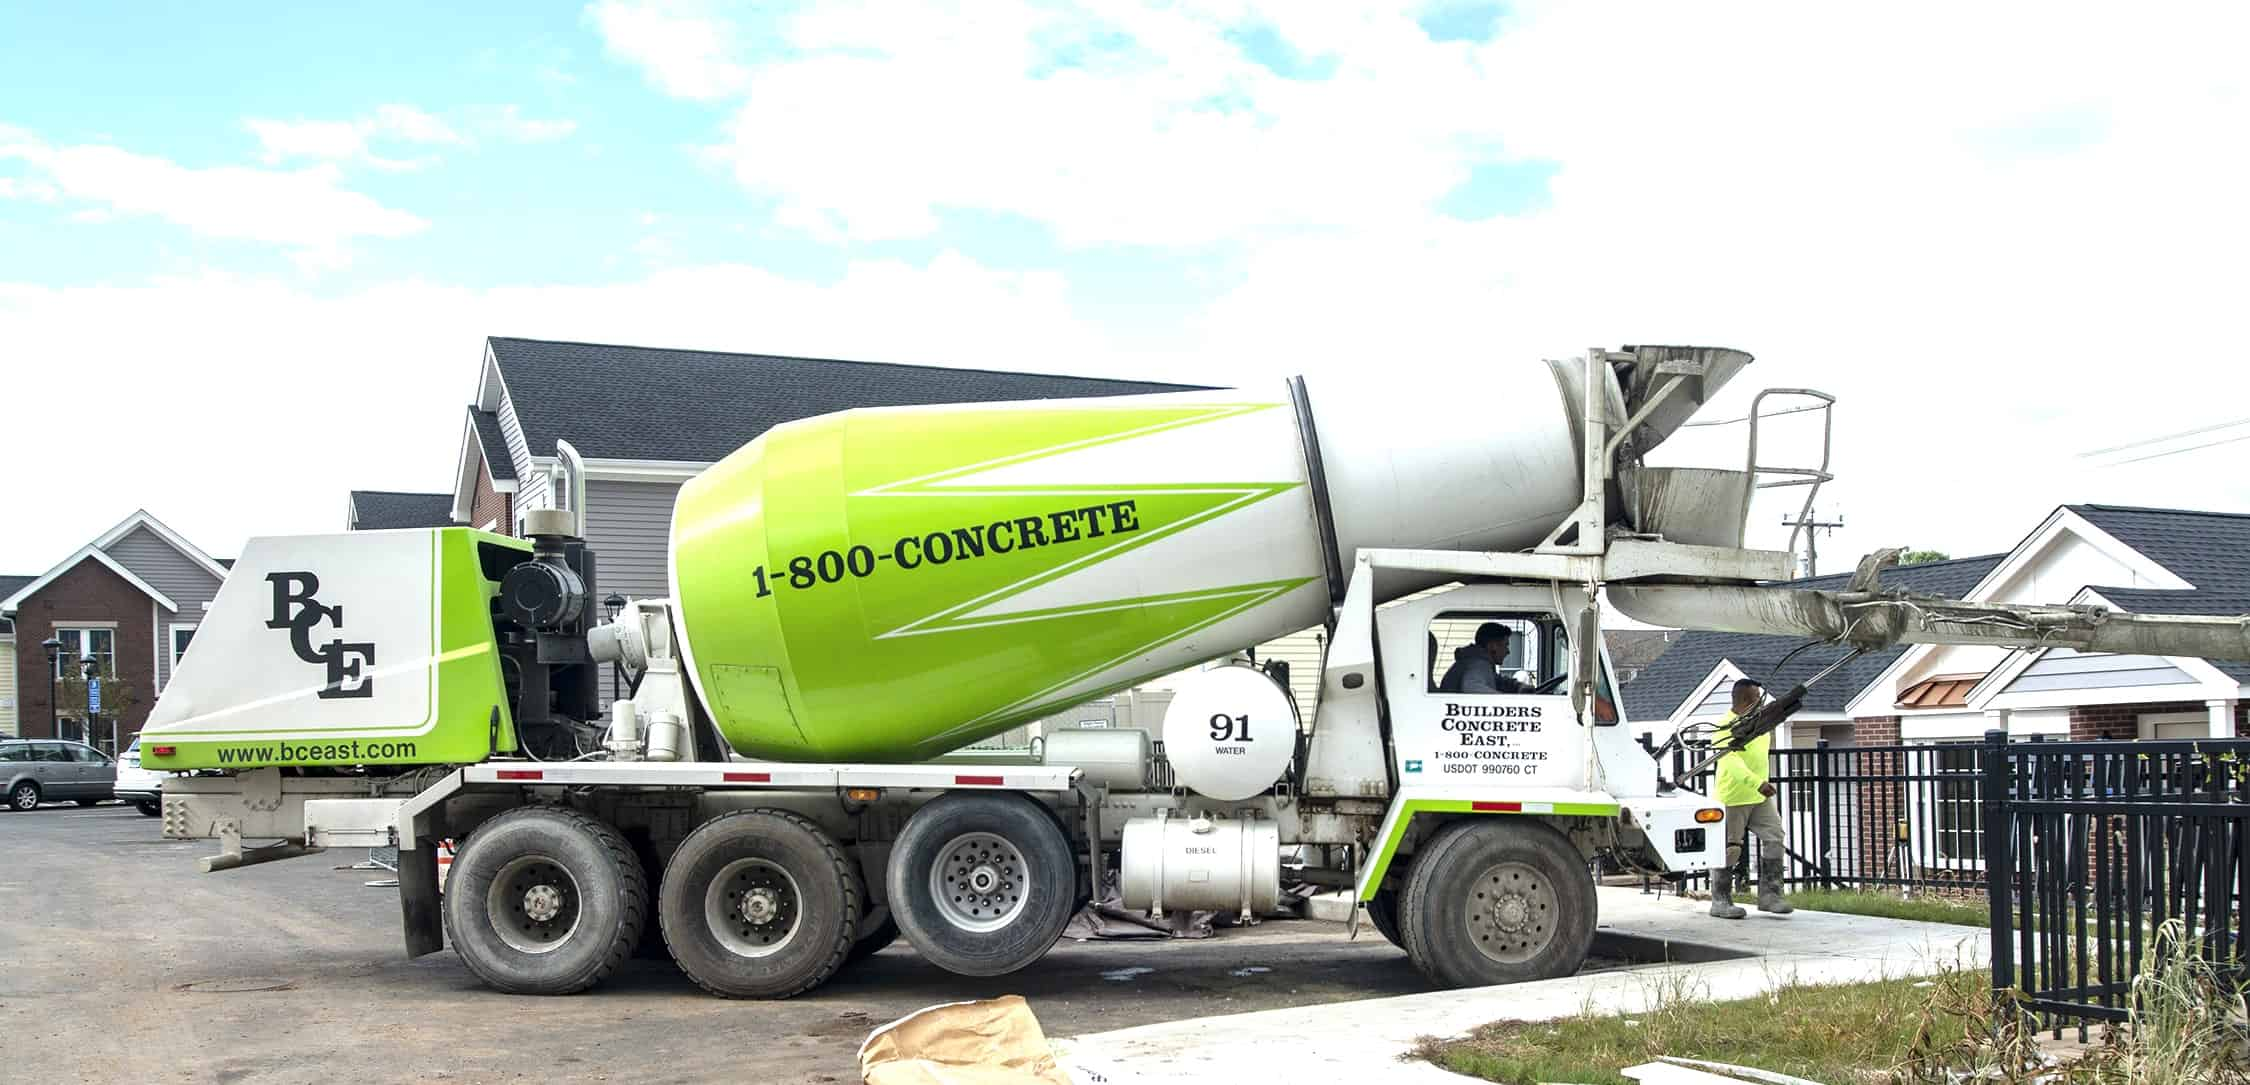 Builders Concrete East - 1-800-CONCRETE on Residential Pour in East Hartford,CT